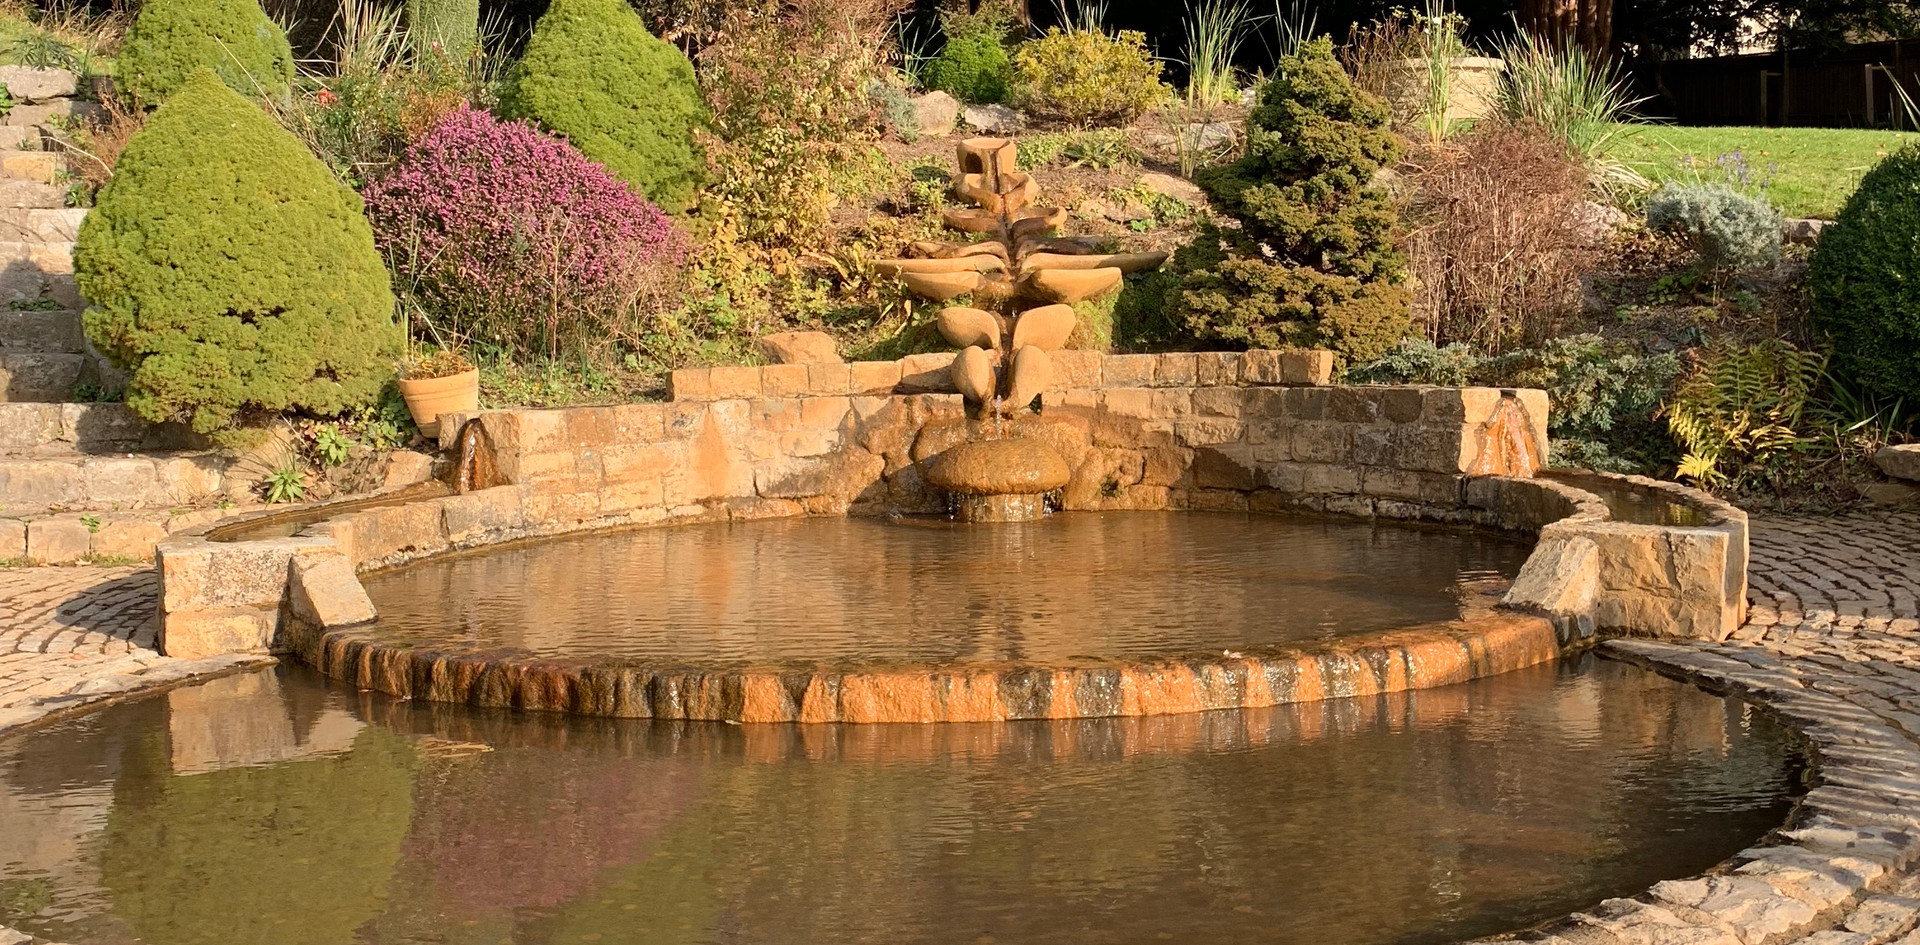 The Chalice Fountains